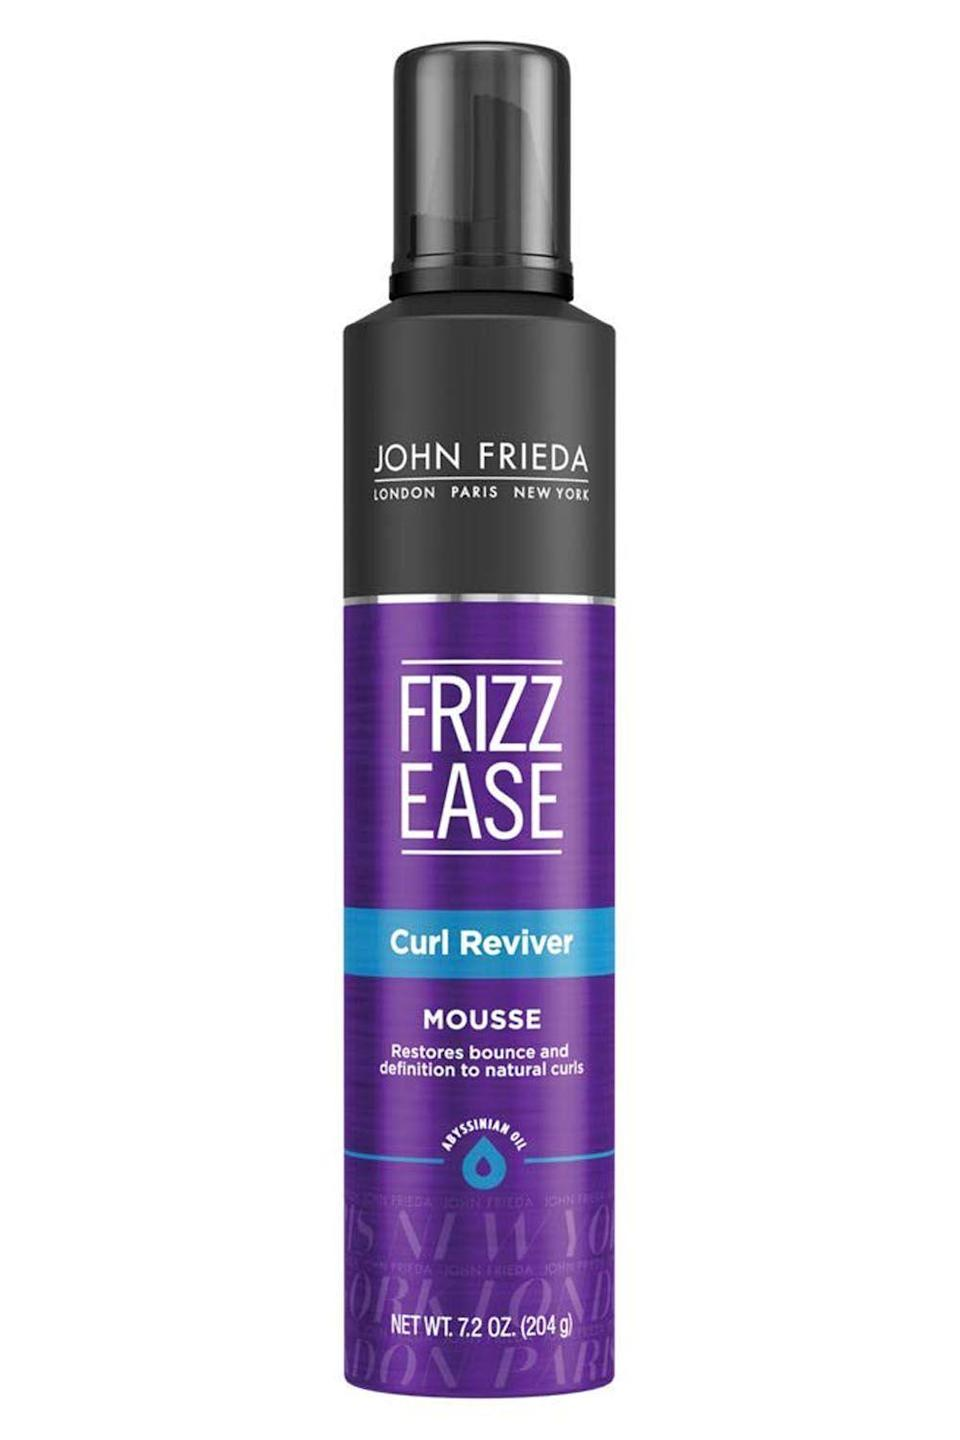 """<p><strong>John Frieda</strong></p><p>ulta.com</p><p><strong>$8.99</strong></p><p><a href=""""https://www.ulta.com/frizz-ease-take-charge-curl-boosting-mousse?productId=xlsImpprod620036"""" rel=""""nofollow noopener"""" target=""""_blank"""" data-ylk=""""slk:Shop Now"""" class=""""link rapid-noclick-resp"""">Shop Now</a></p><p>This mousse is basically a requirement for whenever your curls are feeling a bit <em>meh</em>. The lightweight, <strong>alcohol-free formula will give your hair the right amount of volume and shine,</strong> without drying them out. Scrunch three pumps of the product through damp hair with your fingertips. The result? Defined, super-bouncy curls that still have definition.</p>"""